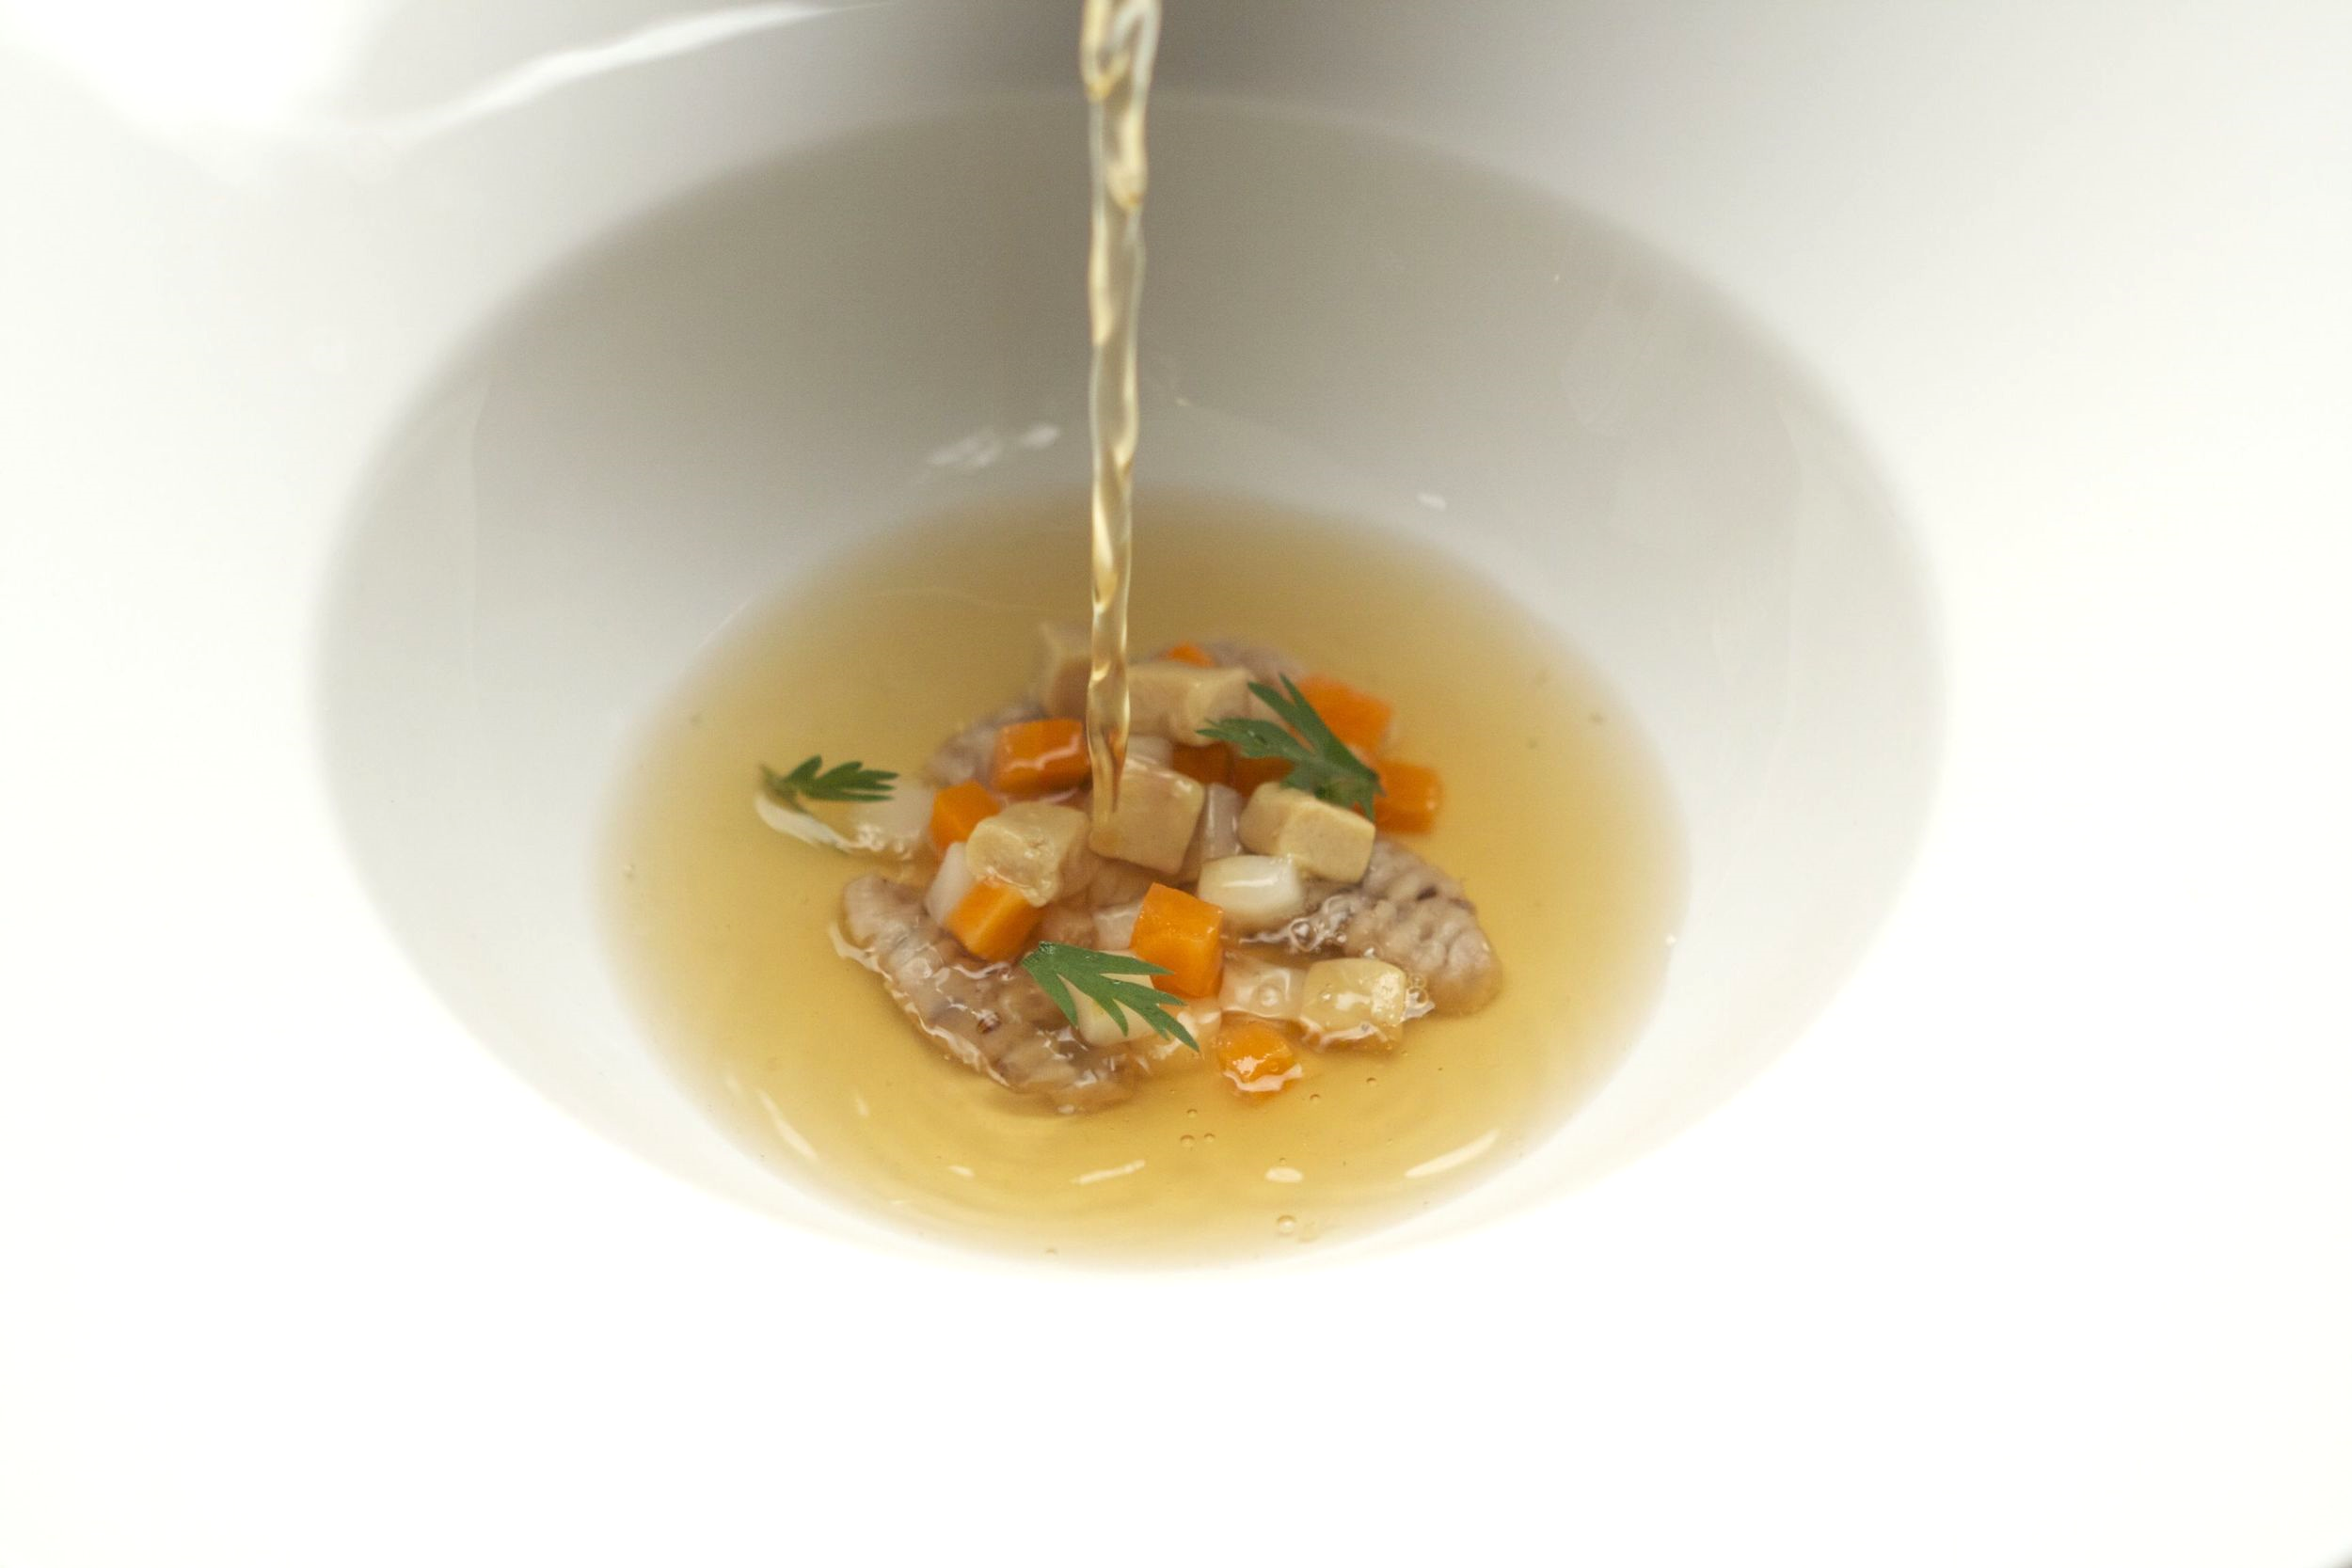 game bird consomme